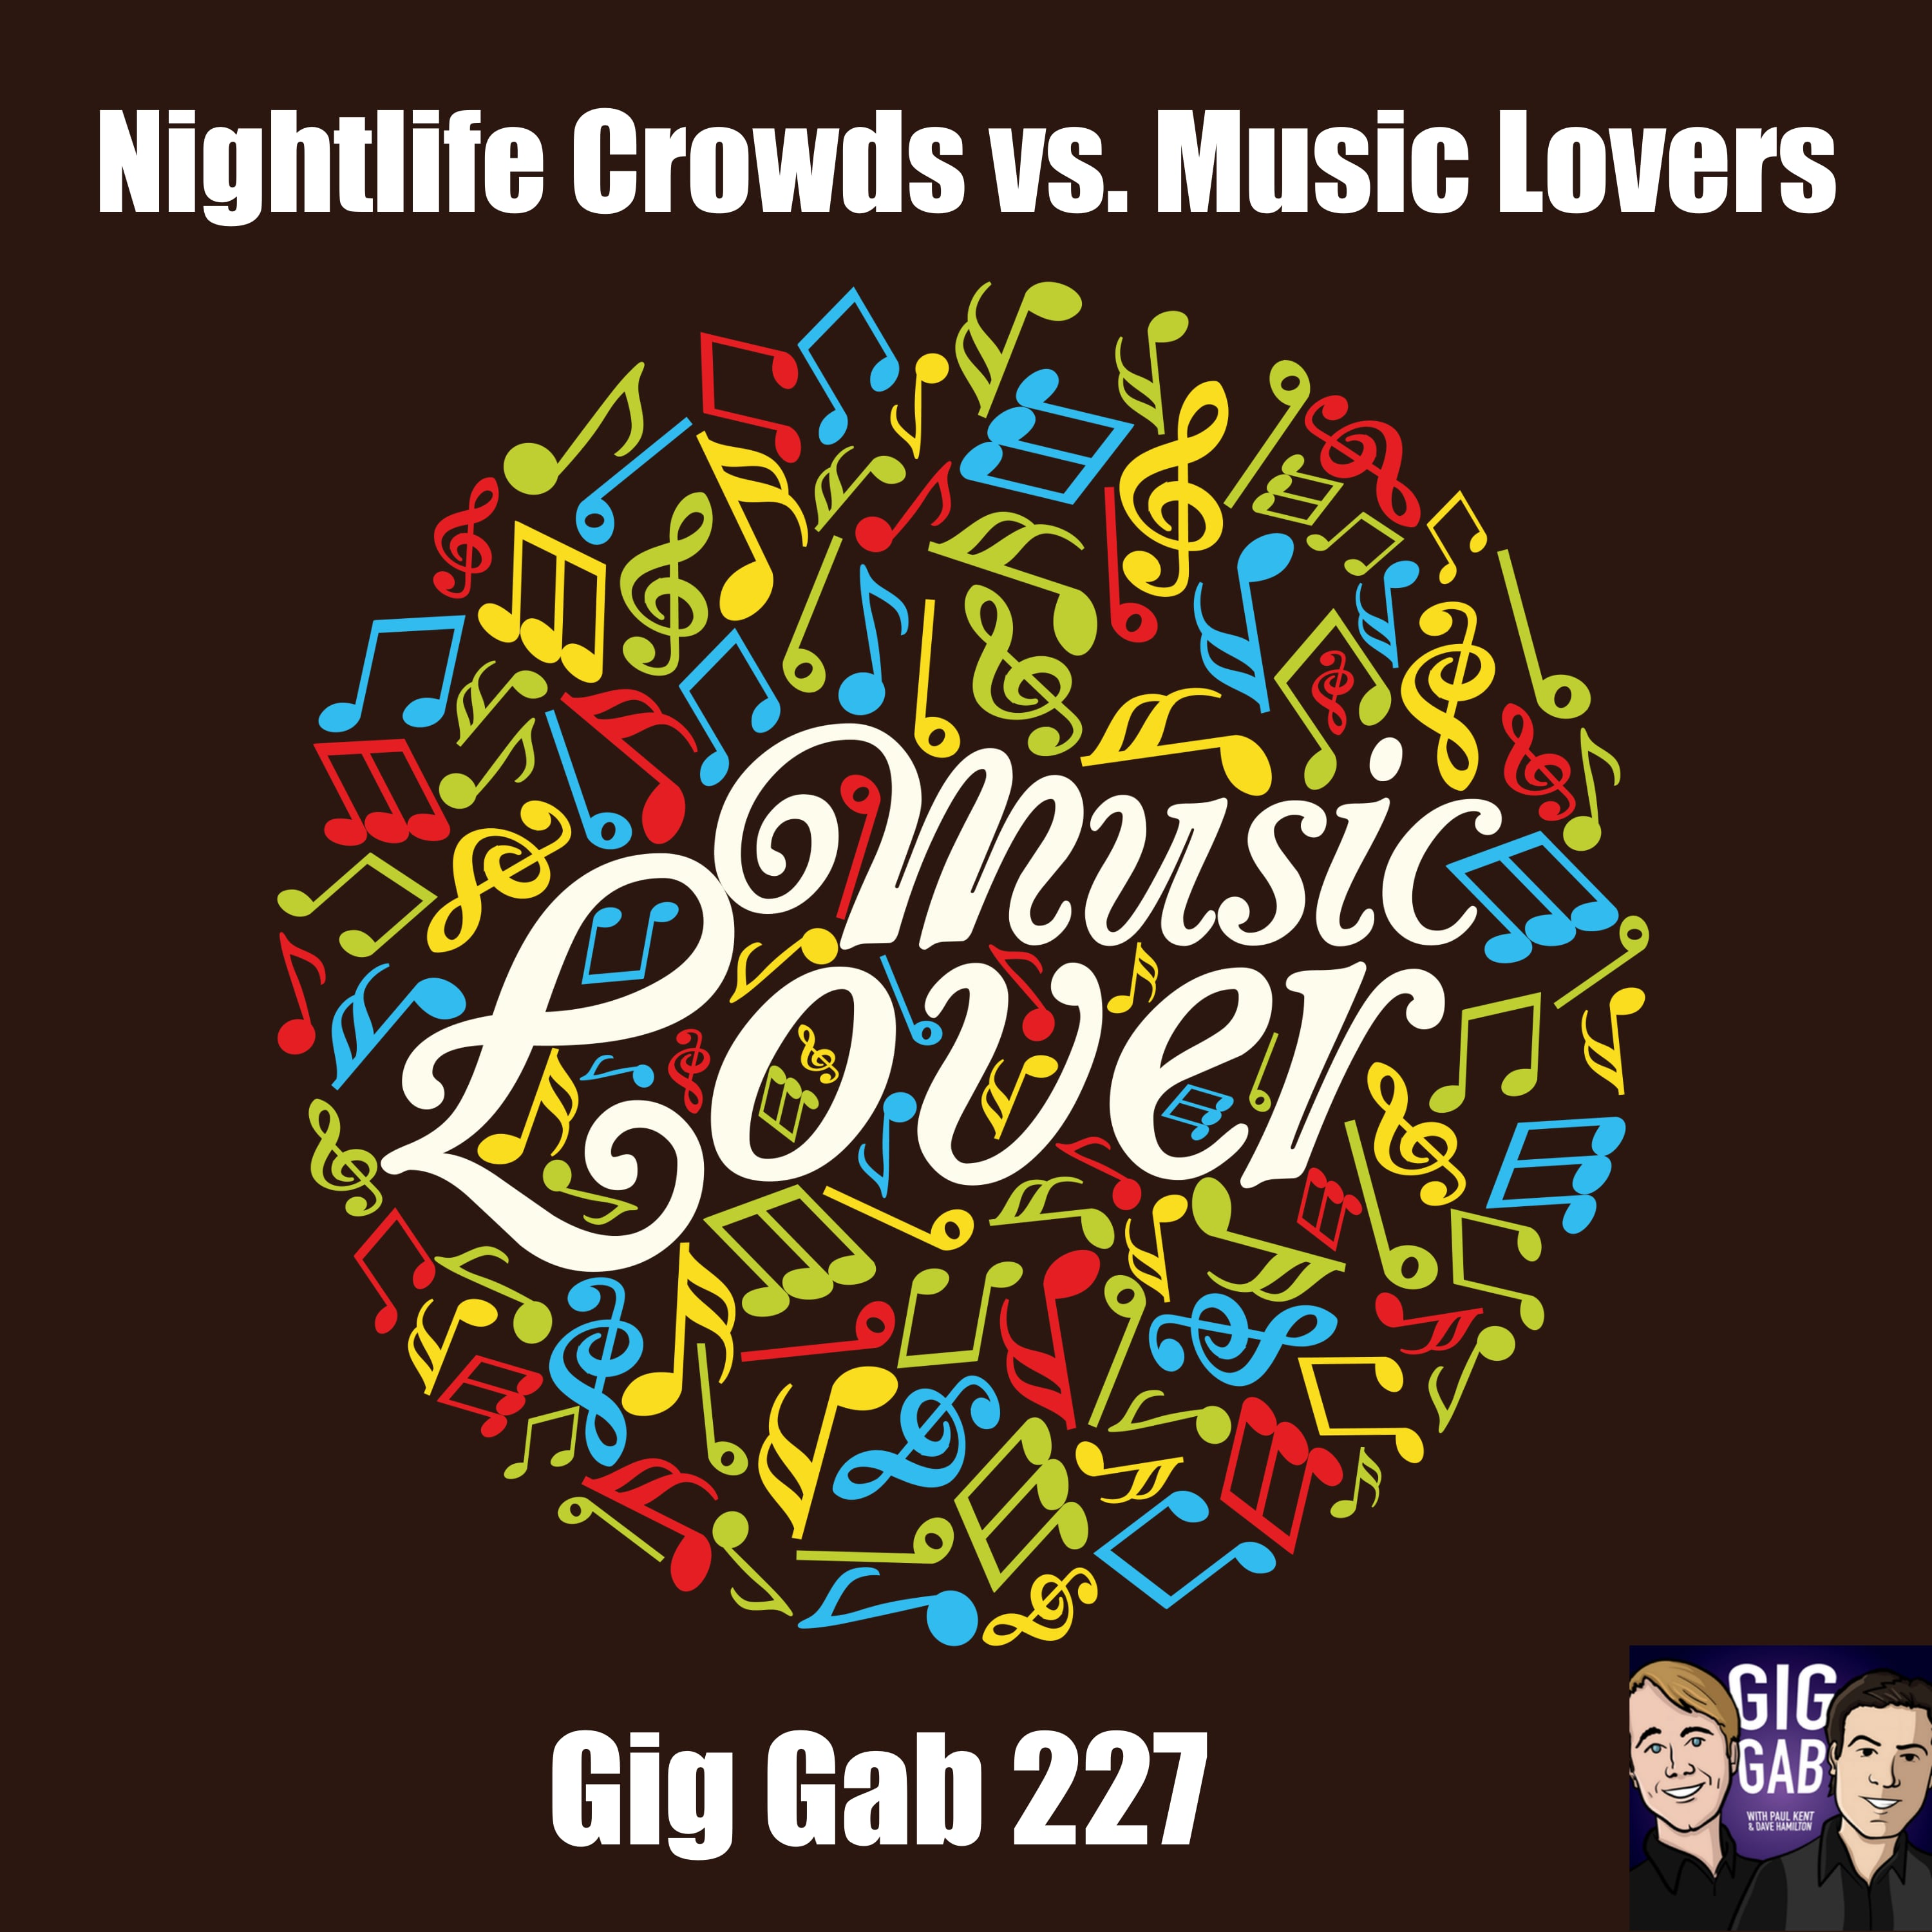 Confidence, Inclusivity, and Nightlife Crowds vs. Music Lovers – Gig Gab 227